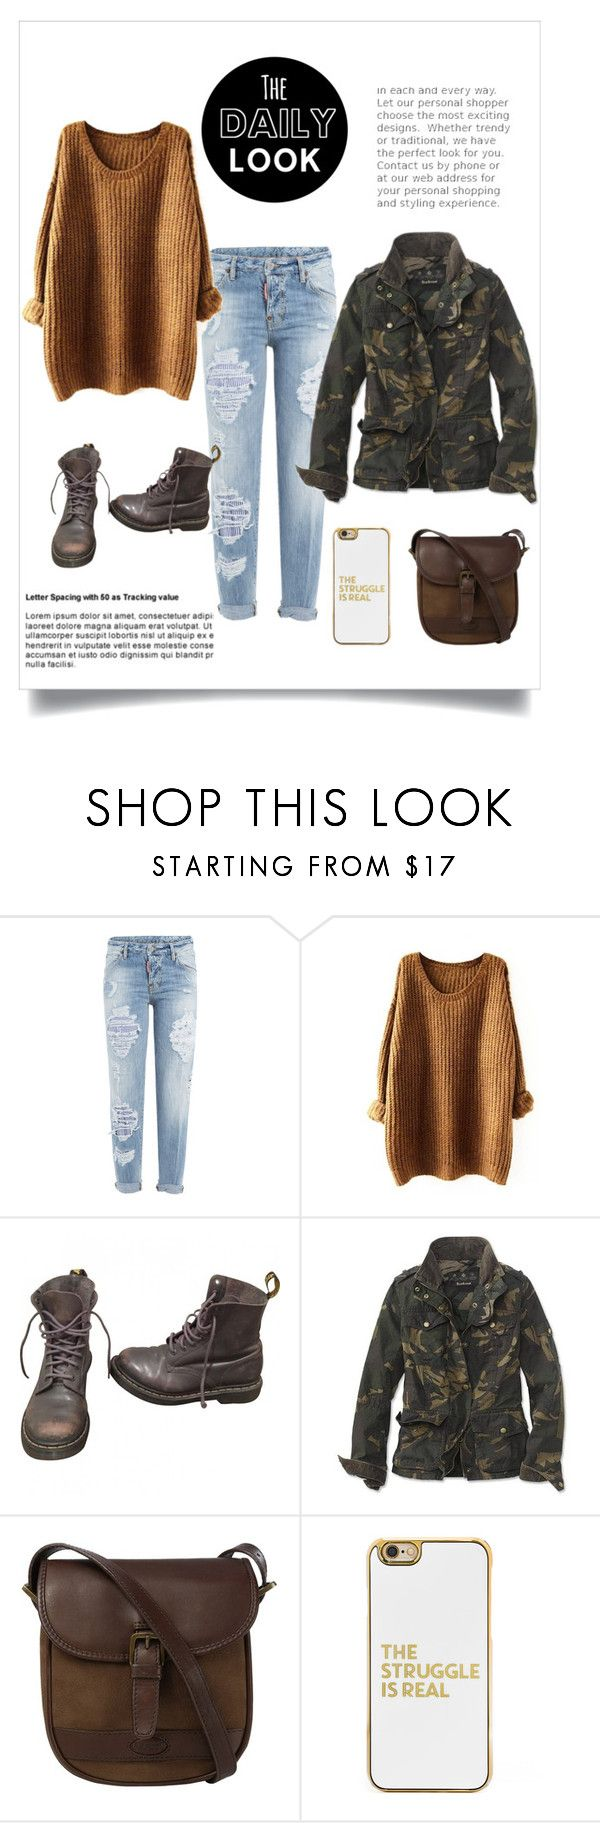 """""""My Daily Look"""" by kadylady1 ❤ liked on Polyvore featuring Dsquared2, Dr. Martens, Barbour, DUBARRY and BaubleBar"""